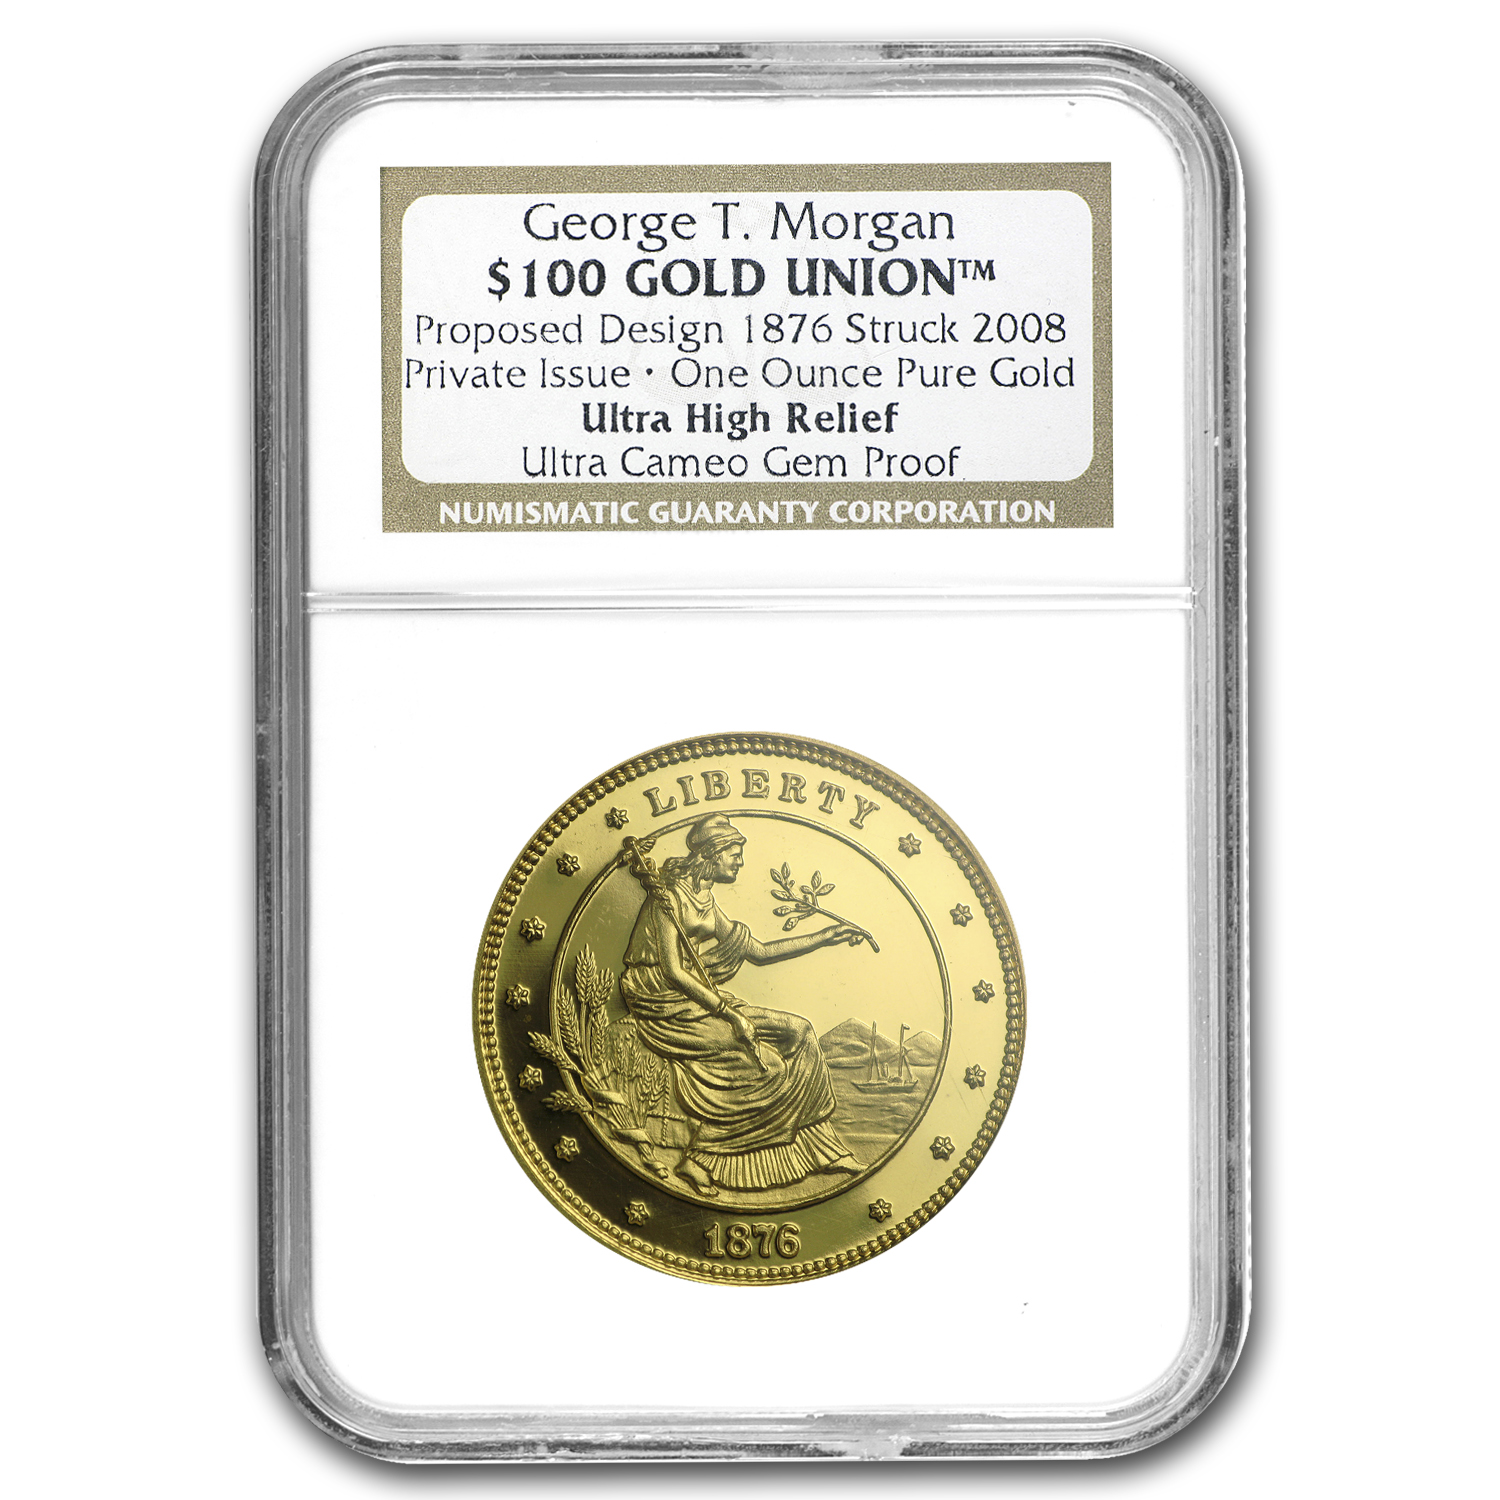 1 oz Gold Rnds - $100 Gold Union George T. Morgan (NGC, PF-UCAM)